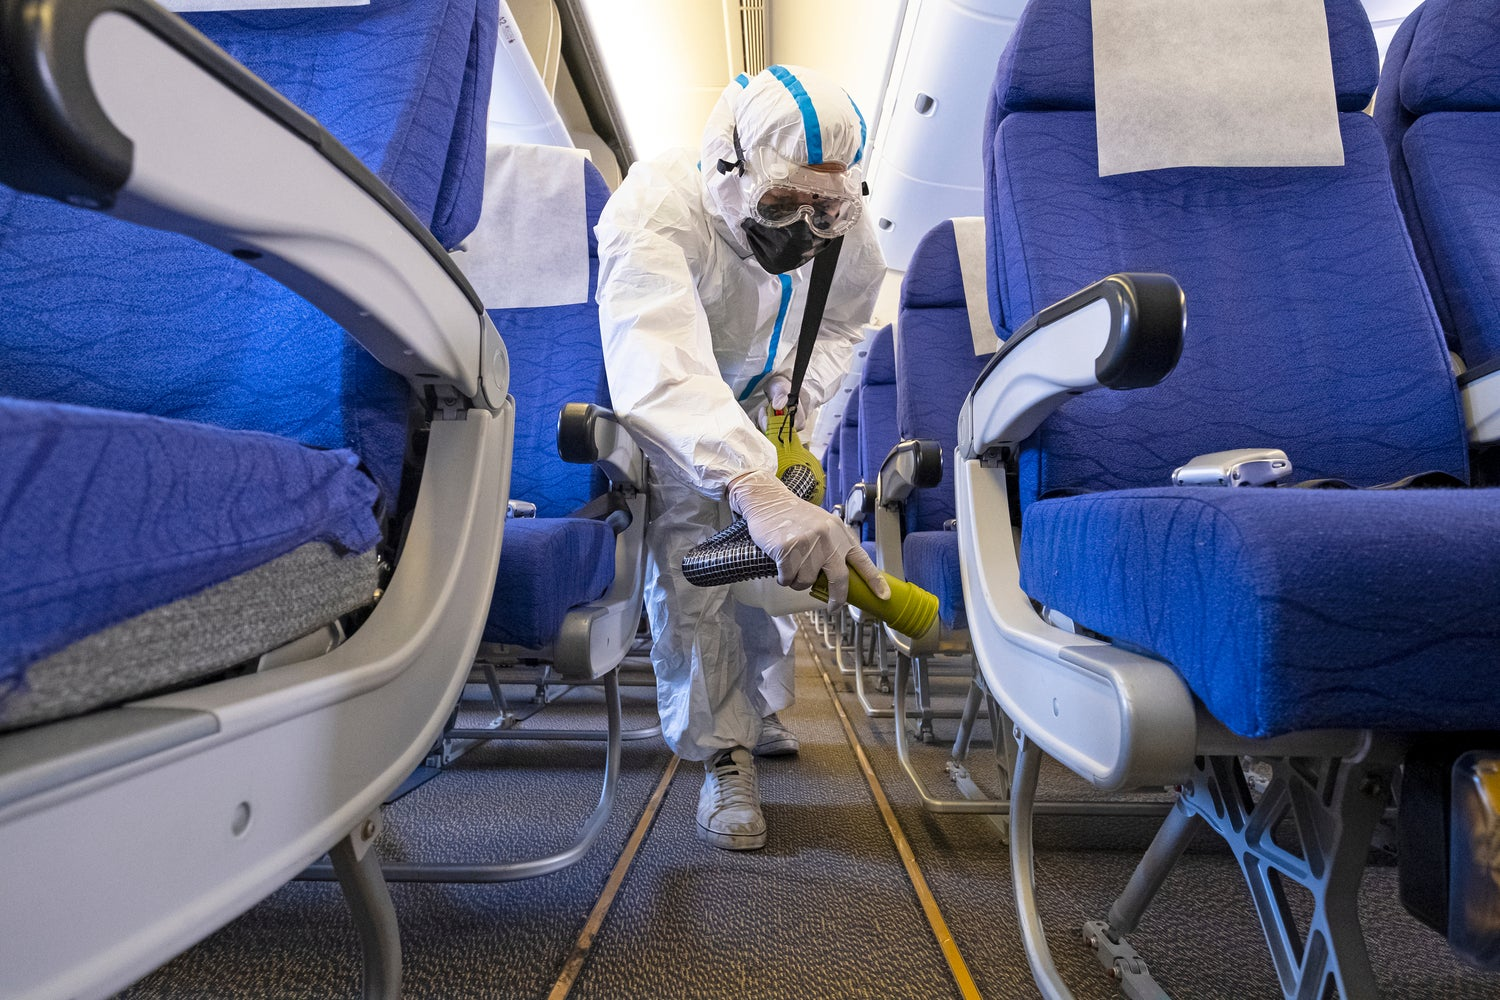 Which airlines are taking the most precautions against COVID-19?